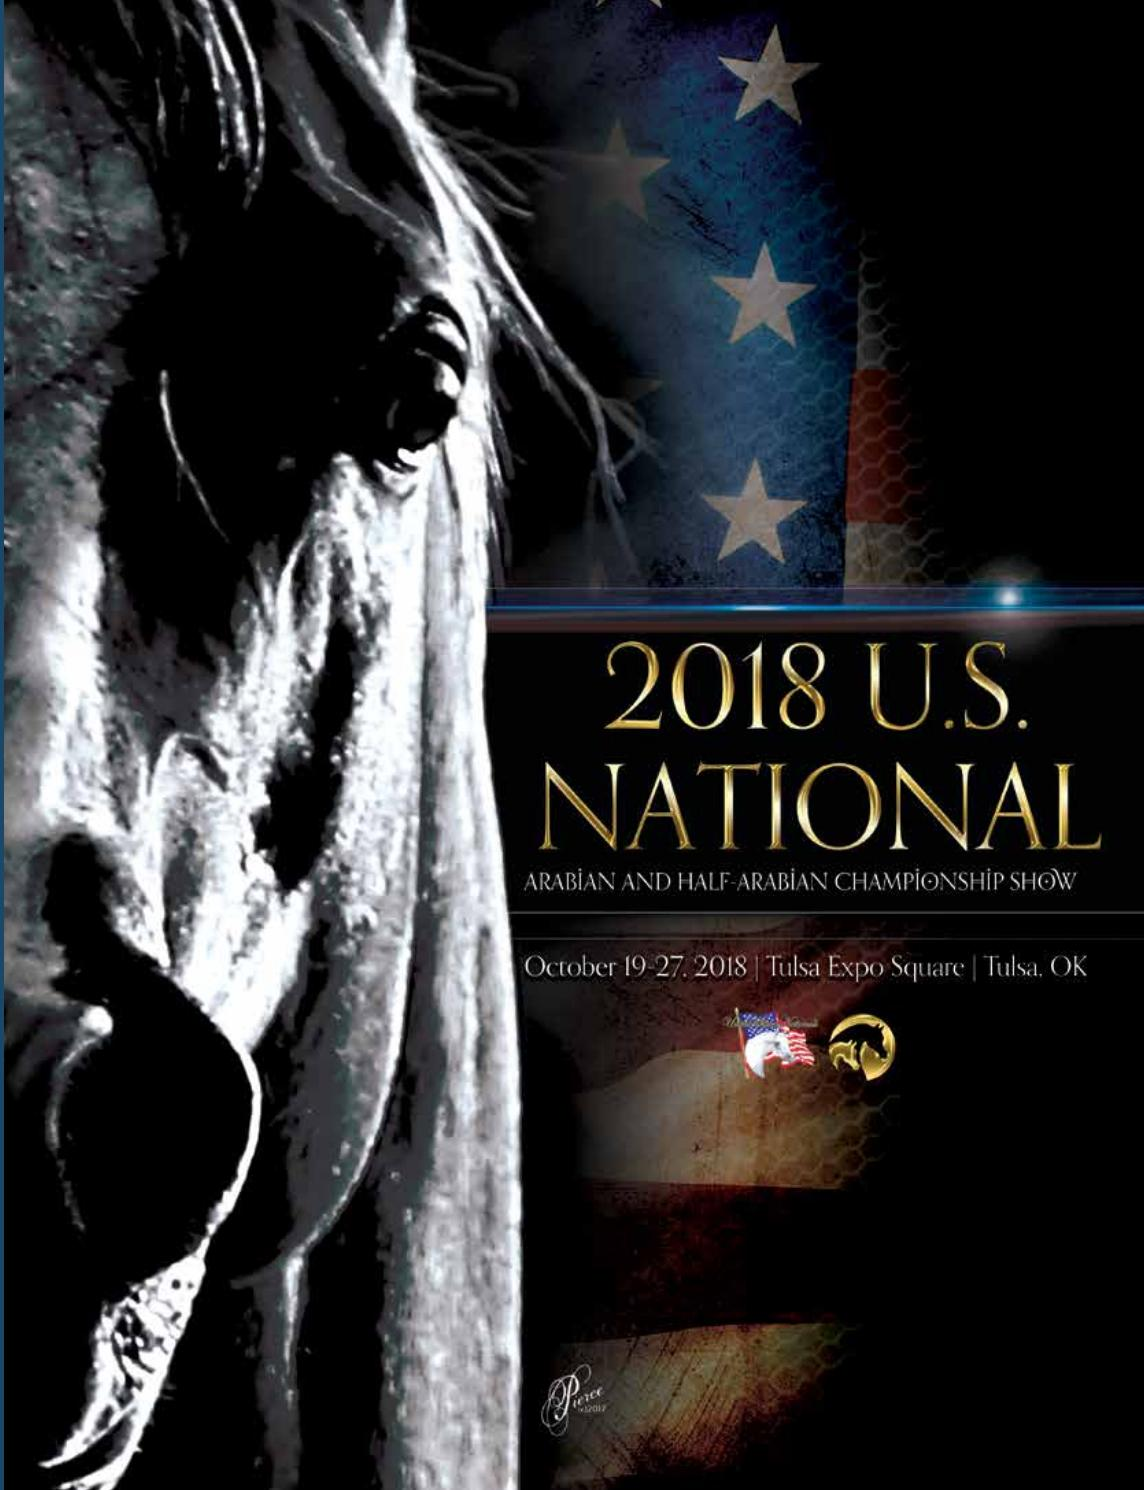 2018 US Nationals Program by Arabian Horse Association - issuu